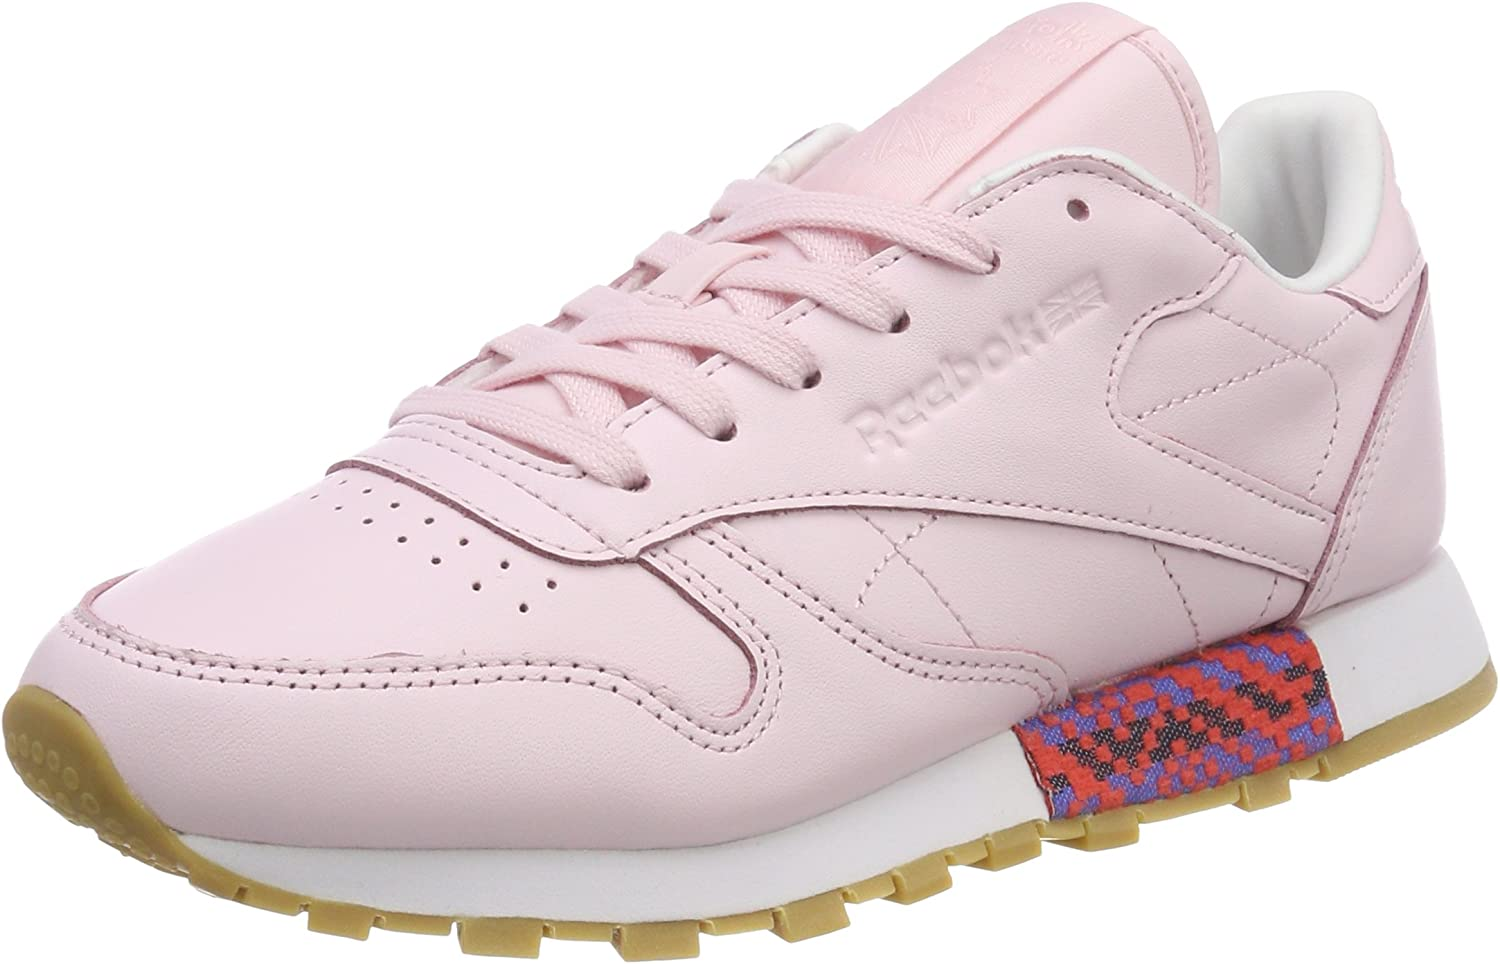 Reebok Classic Womens Leather Sneakers Old Meets New